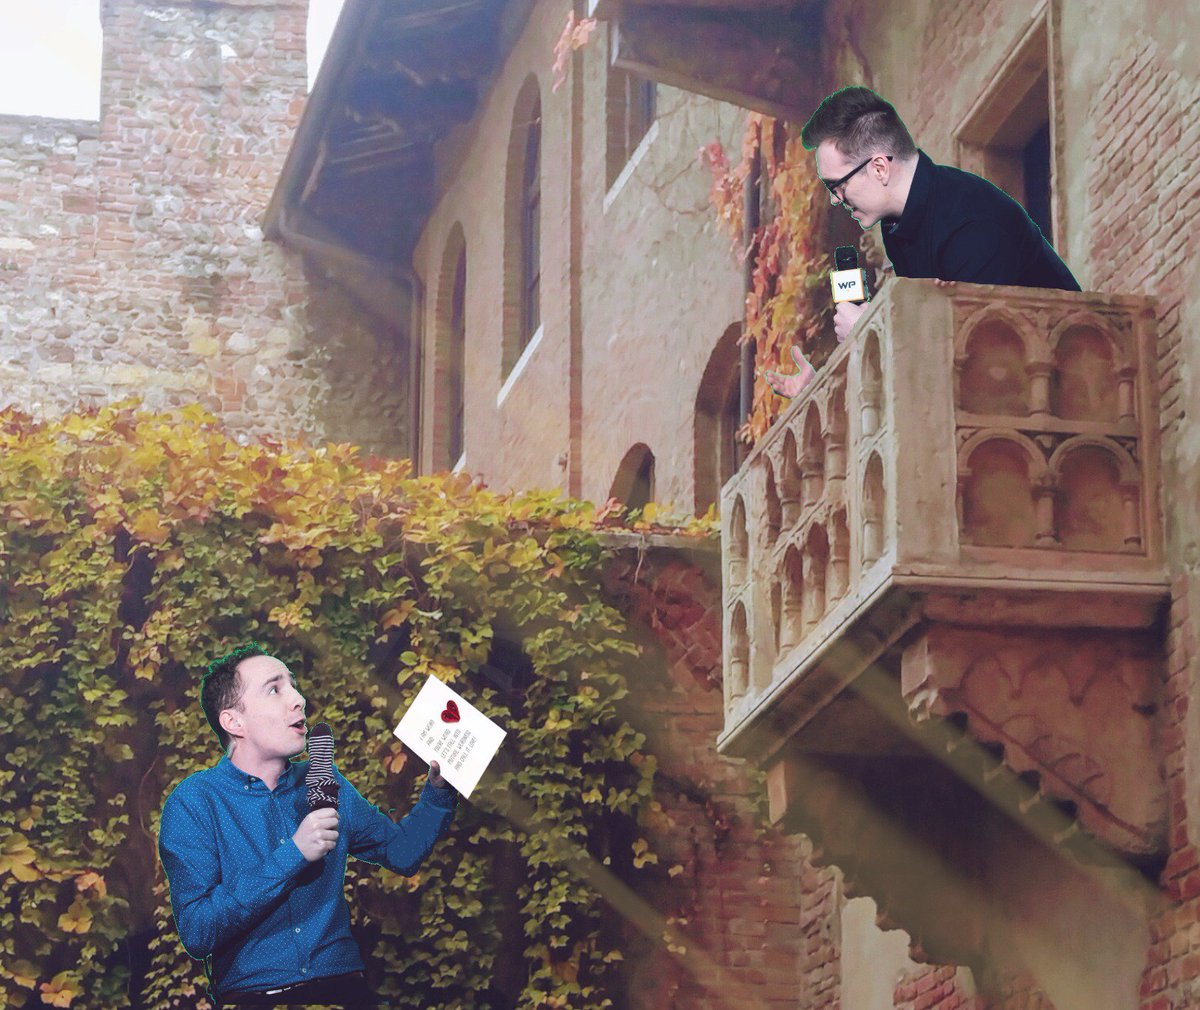 Romeo and Juliet: Balcony Scene, Act 2, Scene 2 (with a valentine card) <br>http://pic.twitter.com/g2dGsrqcsz